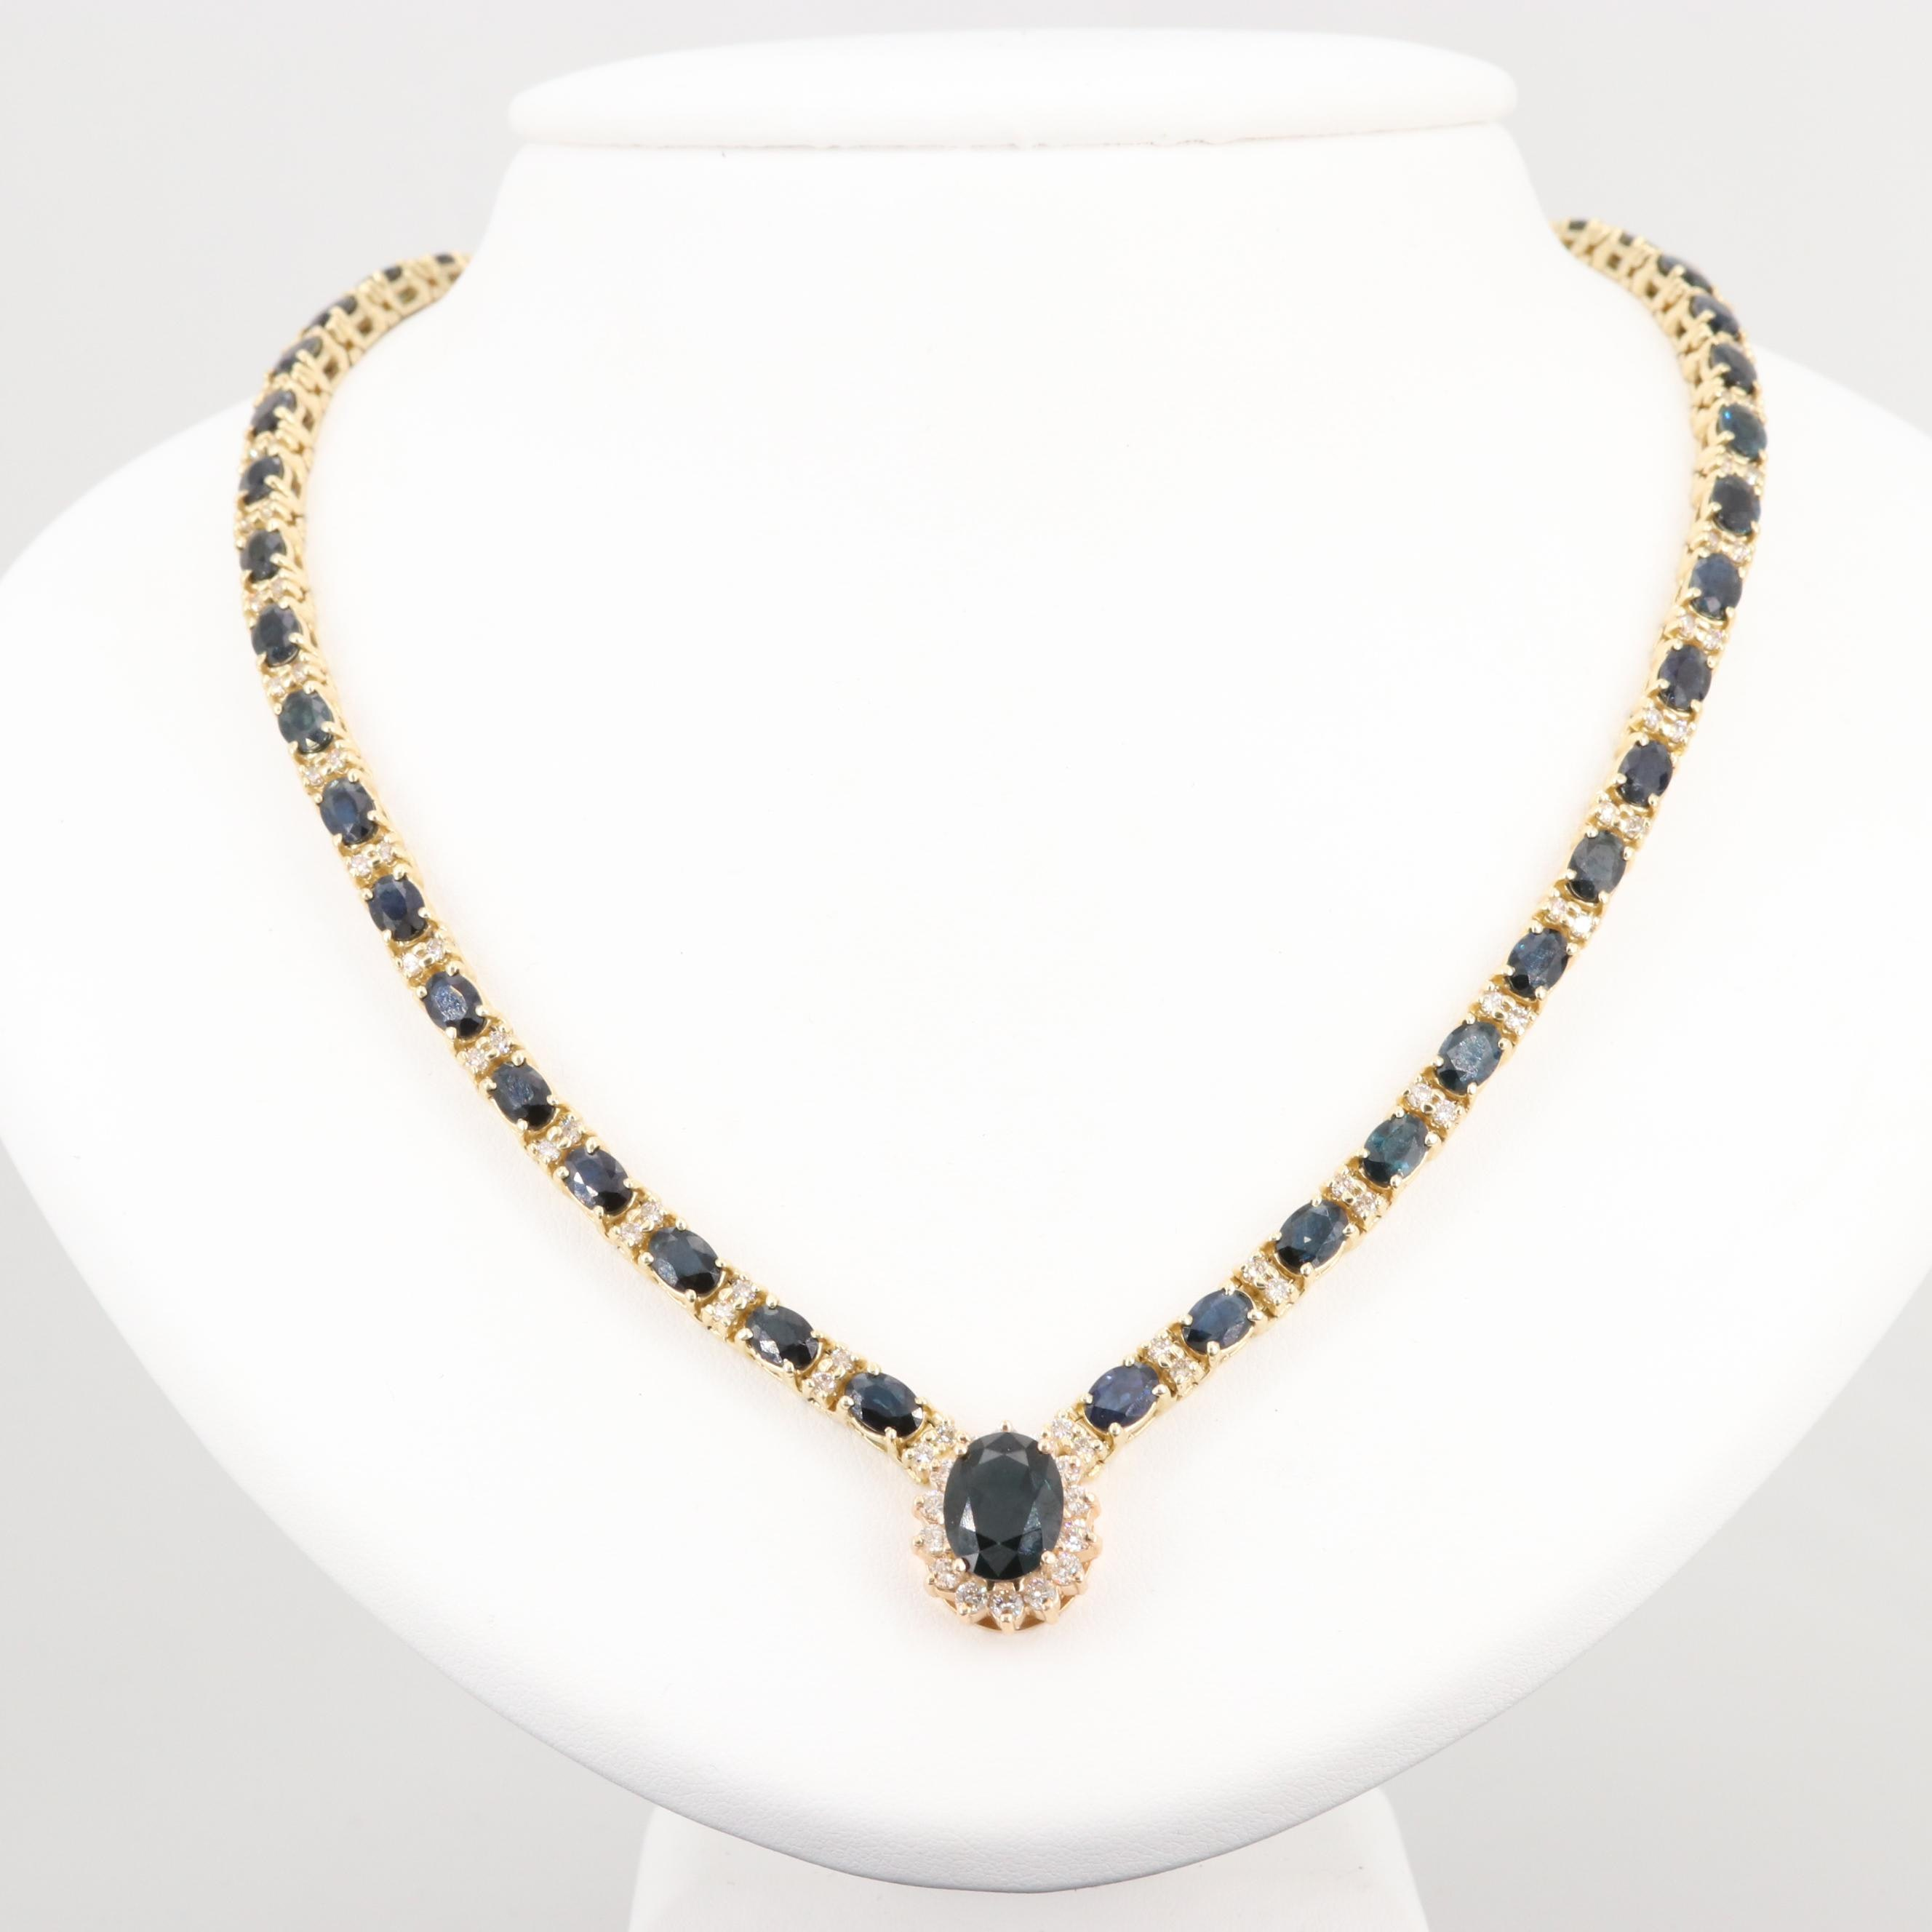 14K Yellow Gold 22.72 CTW Sapphire and 3.14 CTW Diamond Necklace